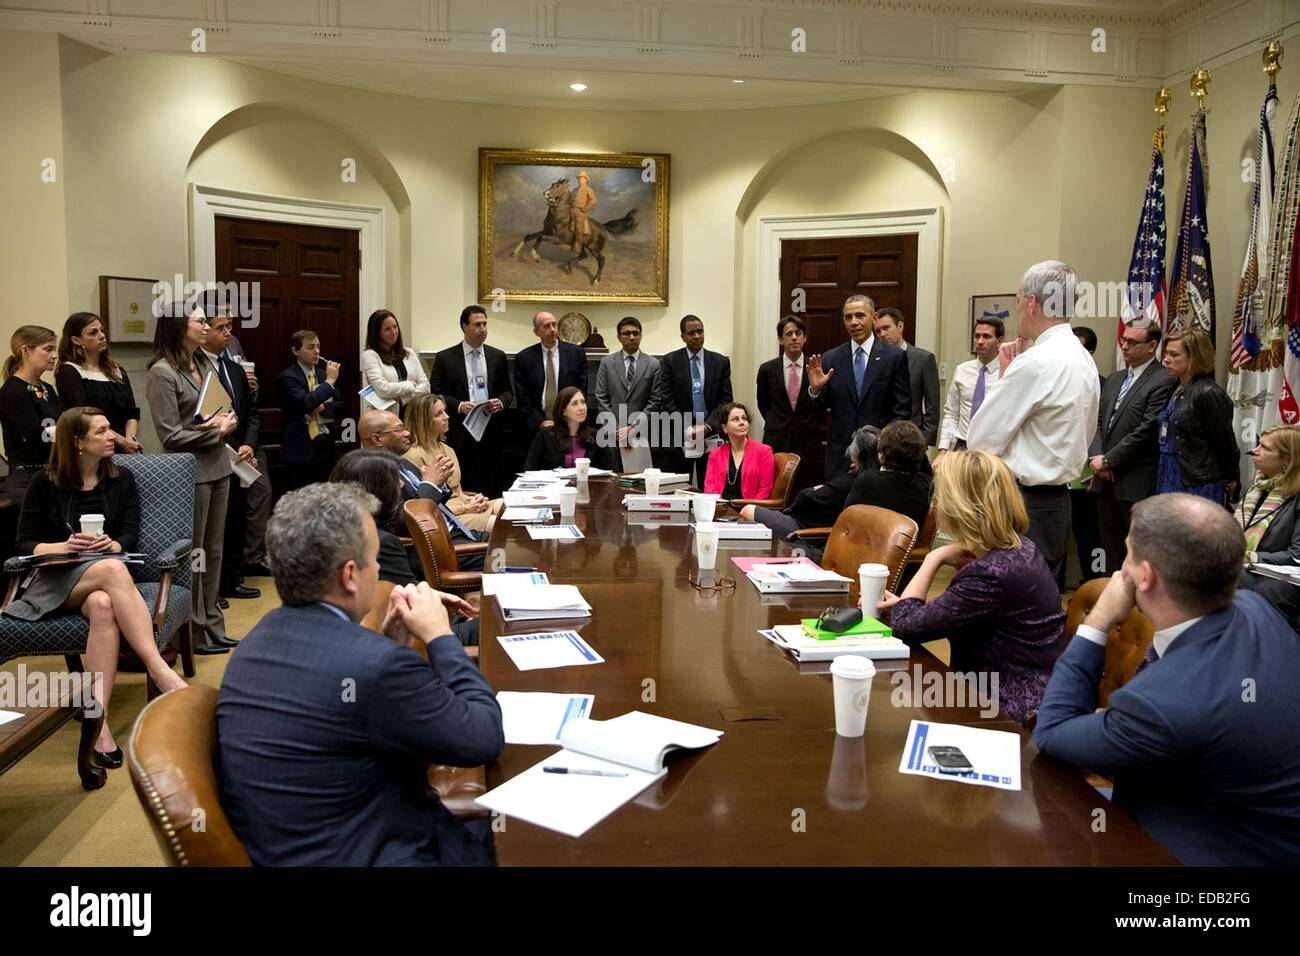 US President Barack Obama speaks White House staff in the Roosevelt Room the day after the democrats lost in the - Stock Image